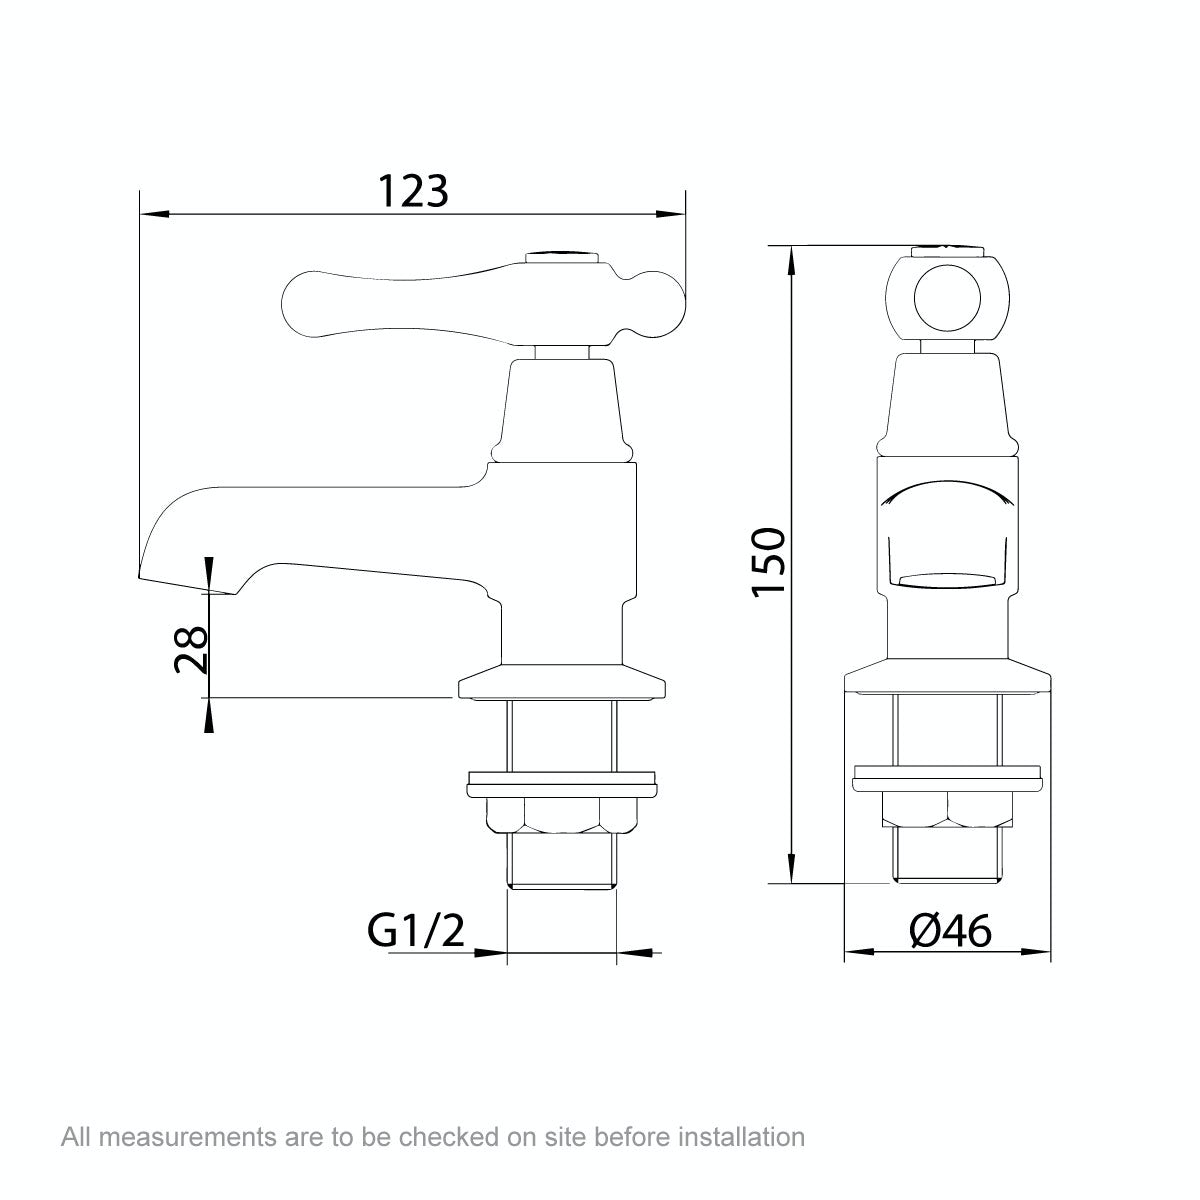 Dimensions for The Bath Co. Camberley lever basin pillar taps